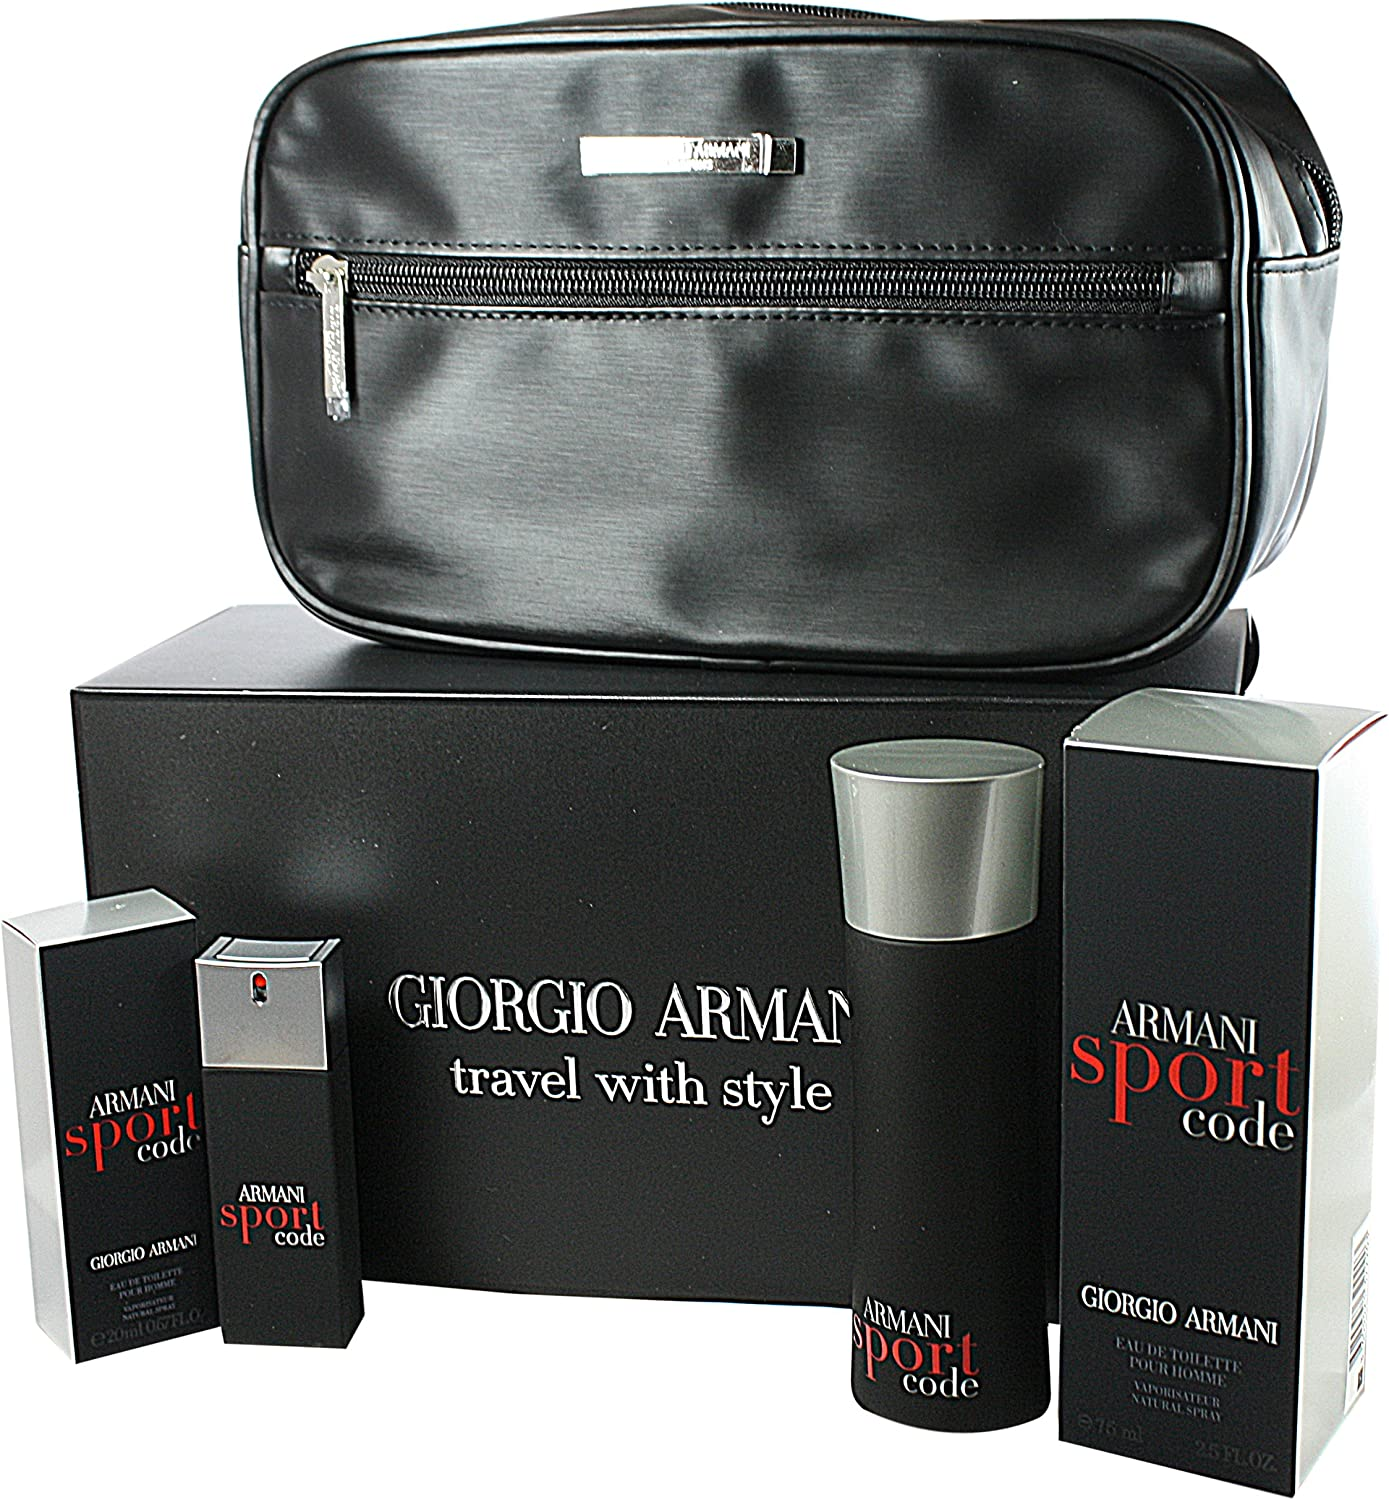 Giorgio Armani Código Sport Set de regalo Homme/Men, Eau de Toilette, vaporisateur/Spray 75 ml, Eau de Toilette, vaporisateur/Spray 20 ml, 1er Pack (1 x 95 ml): Amazon.es: Belleza